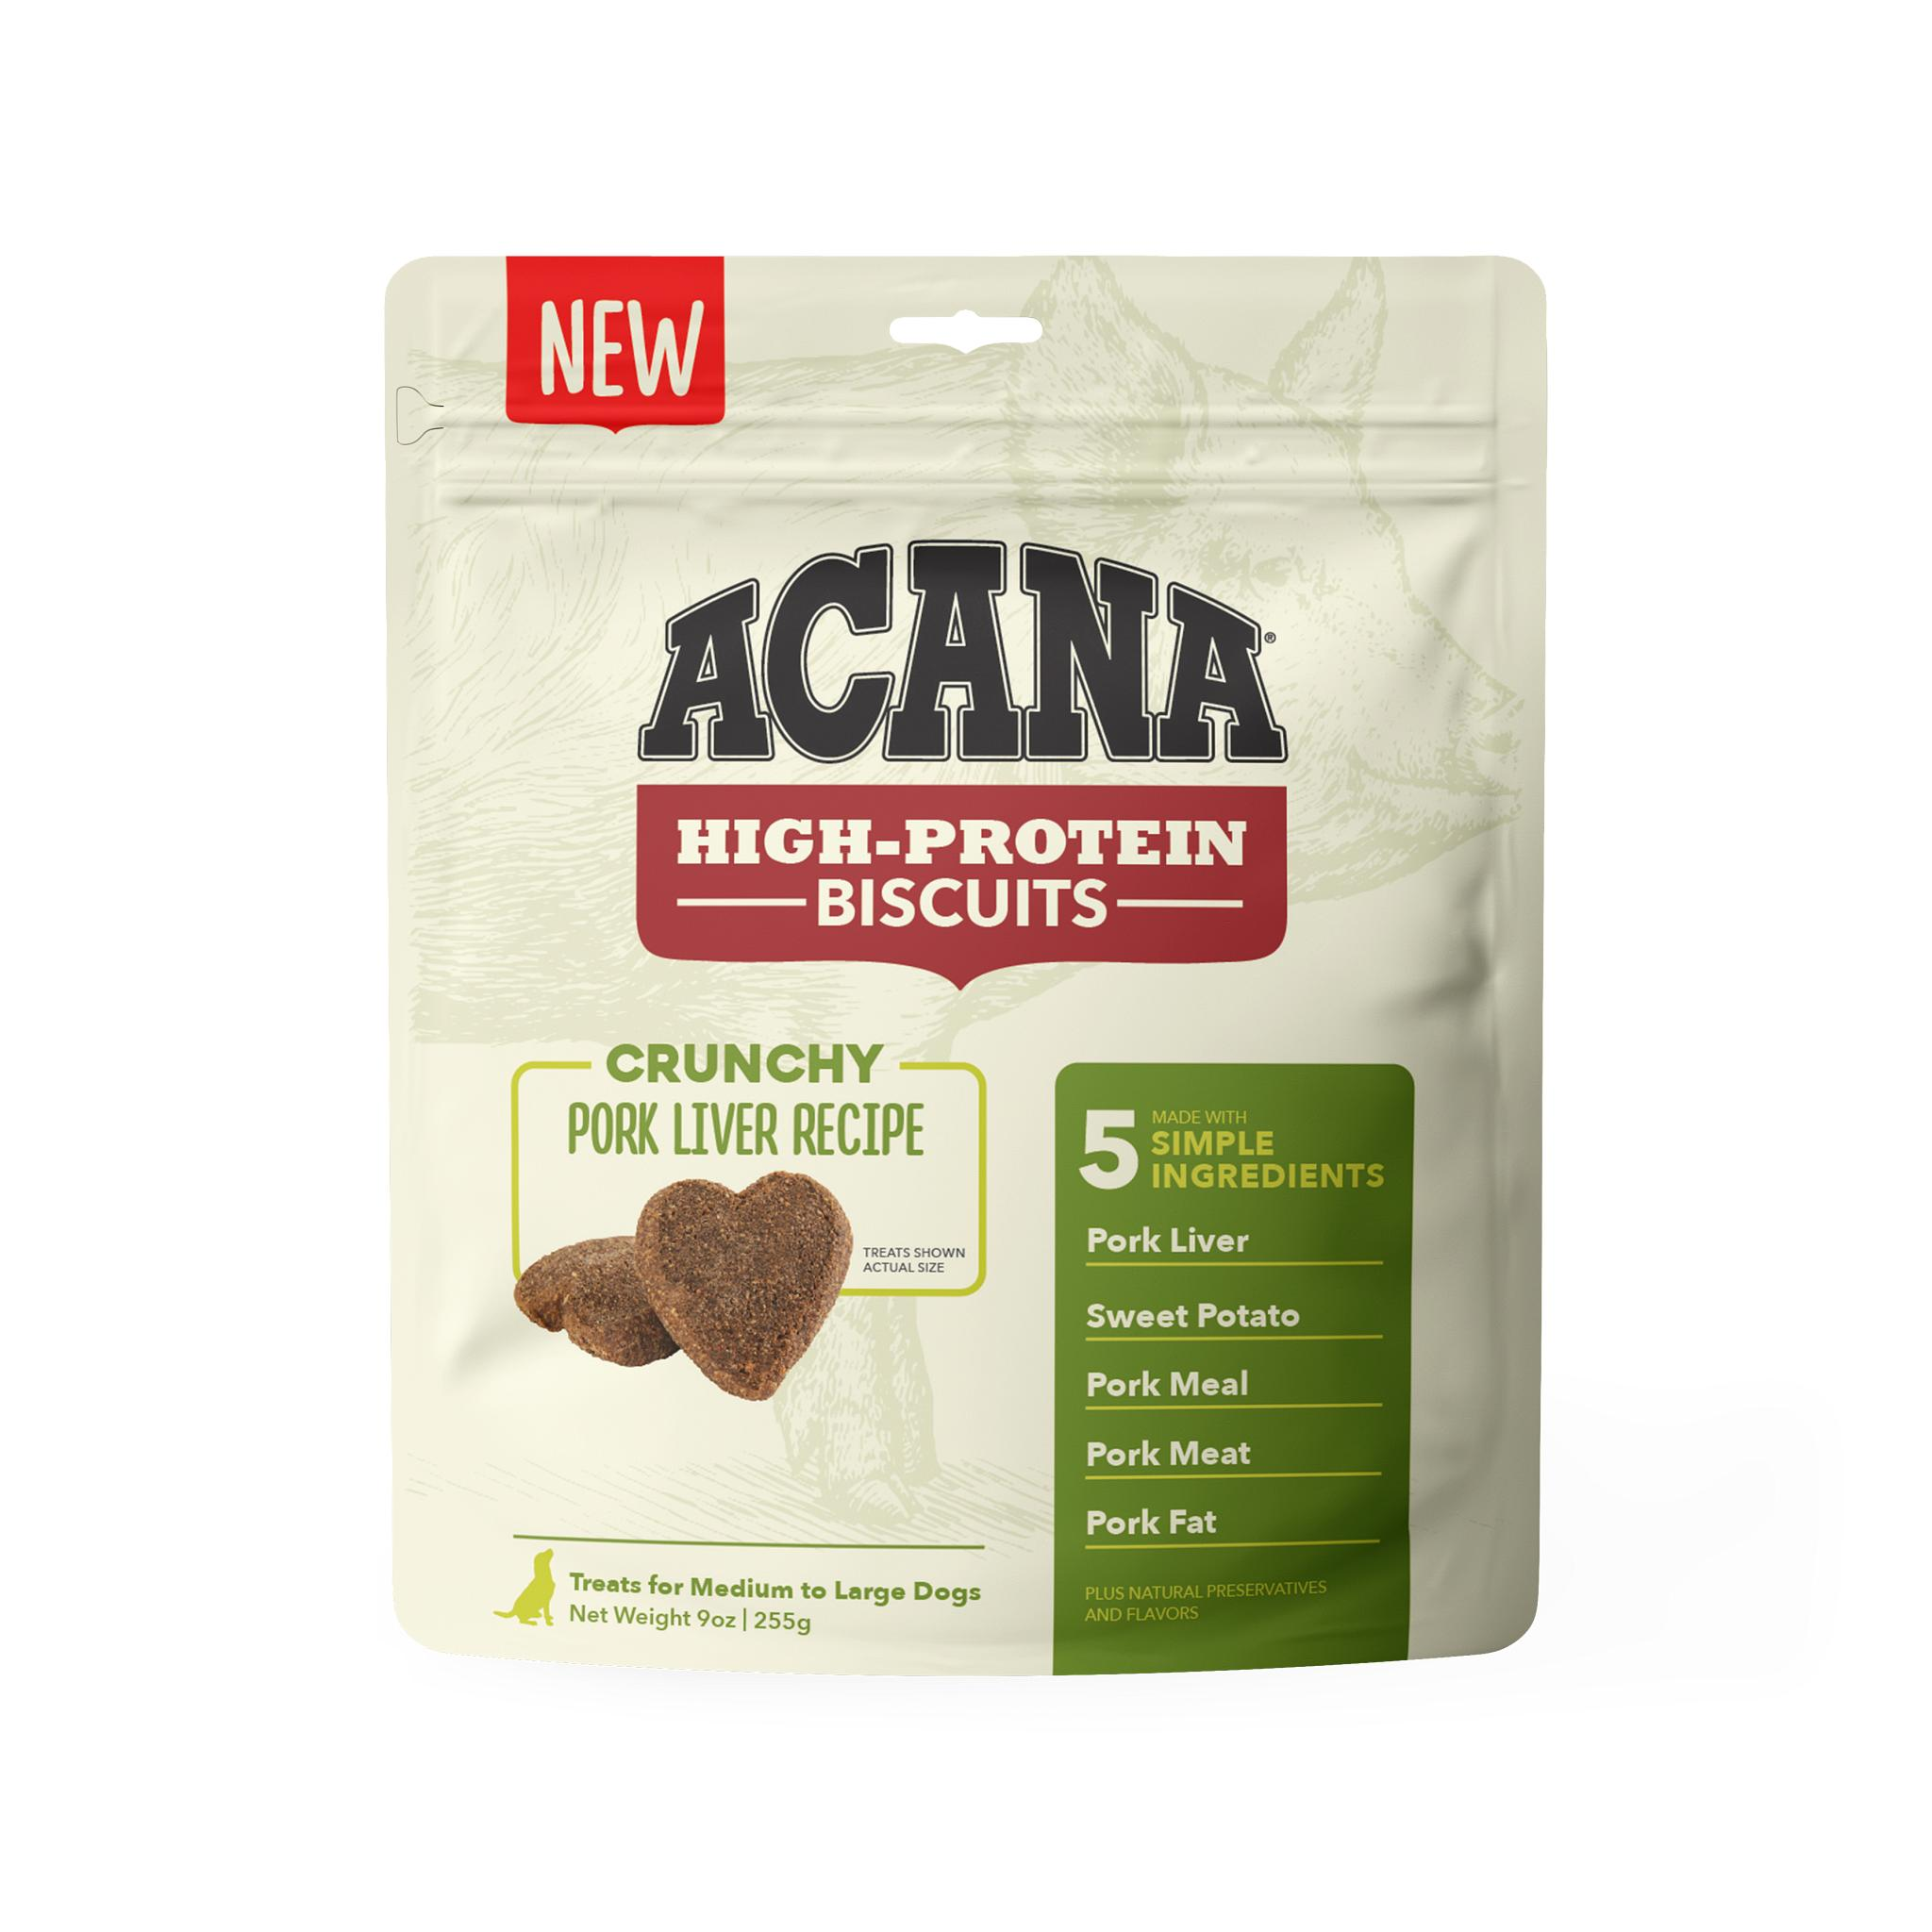 ACANA Crunchy Biscuits Pork Liver Recipe Dog Treats, Large